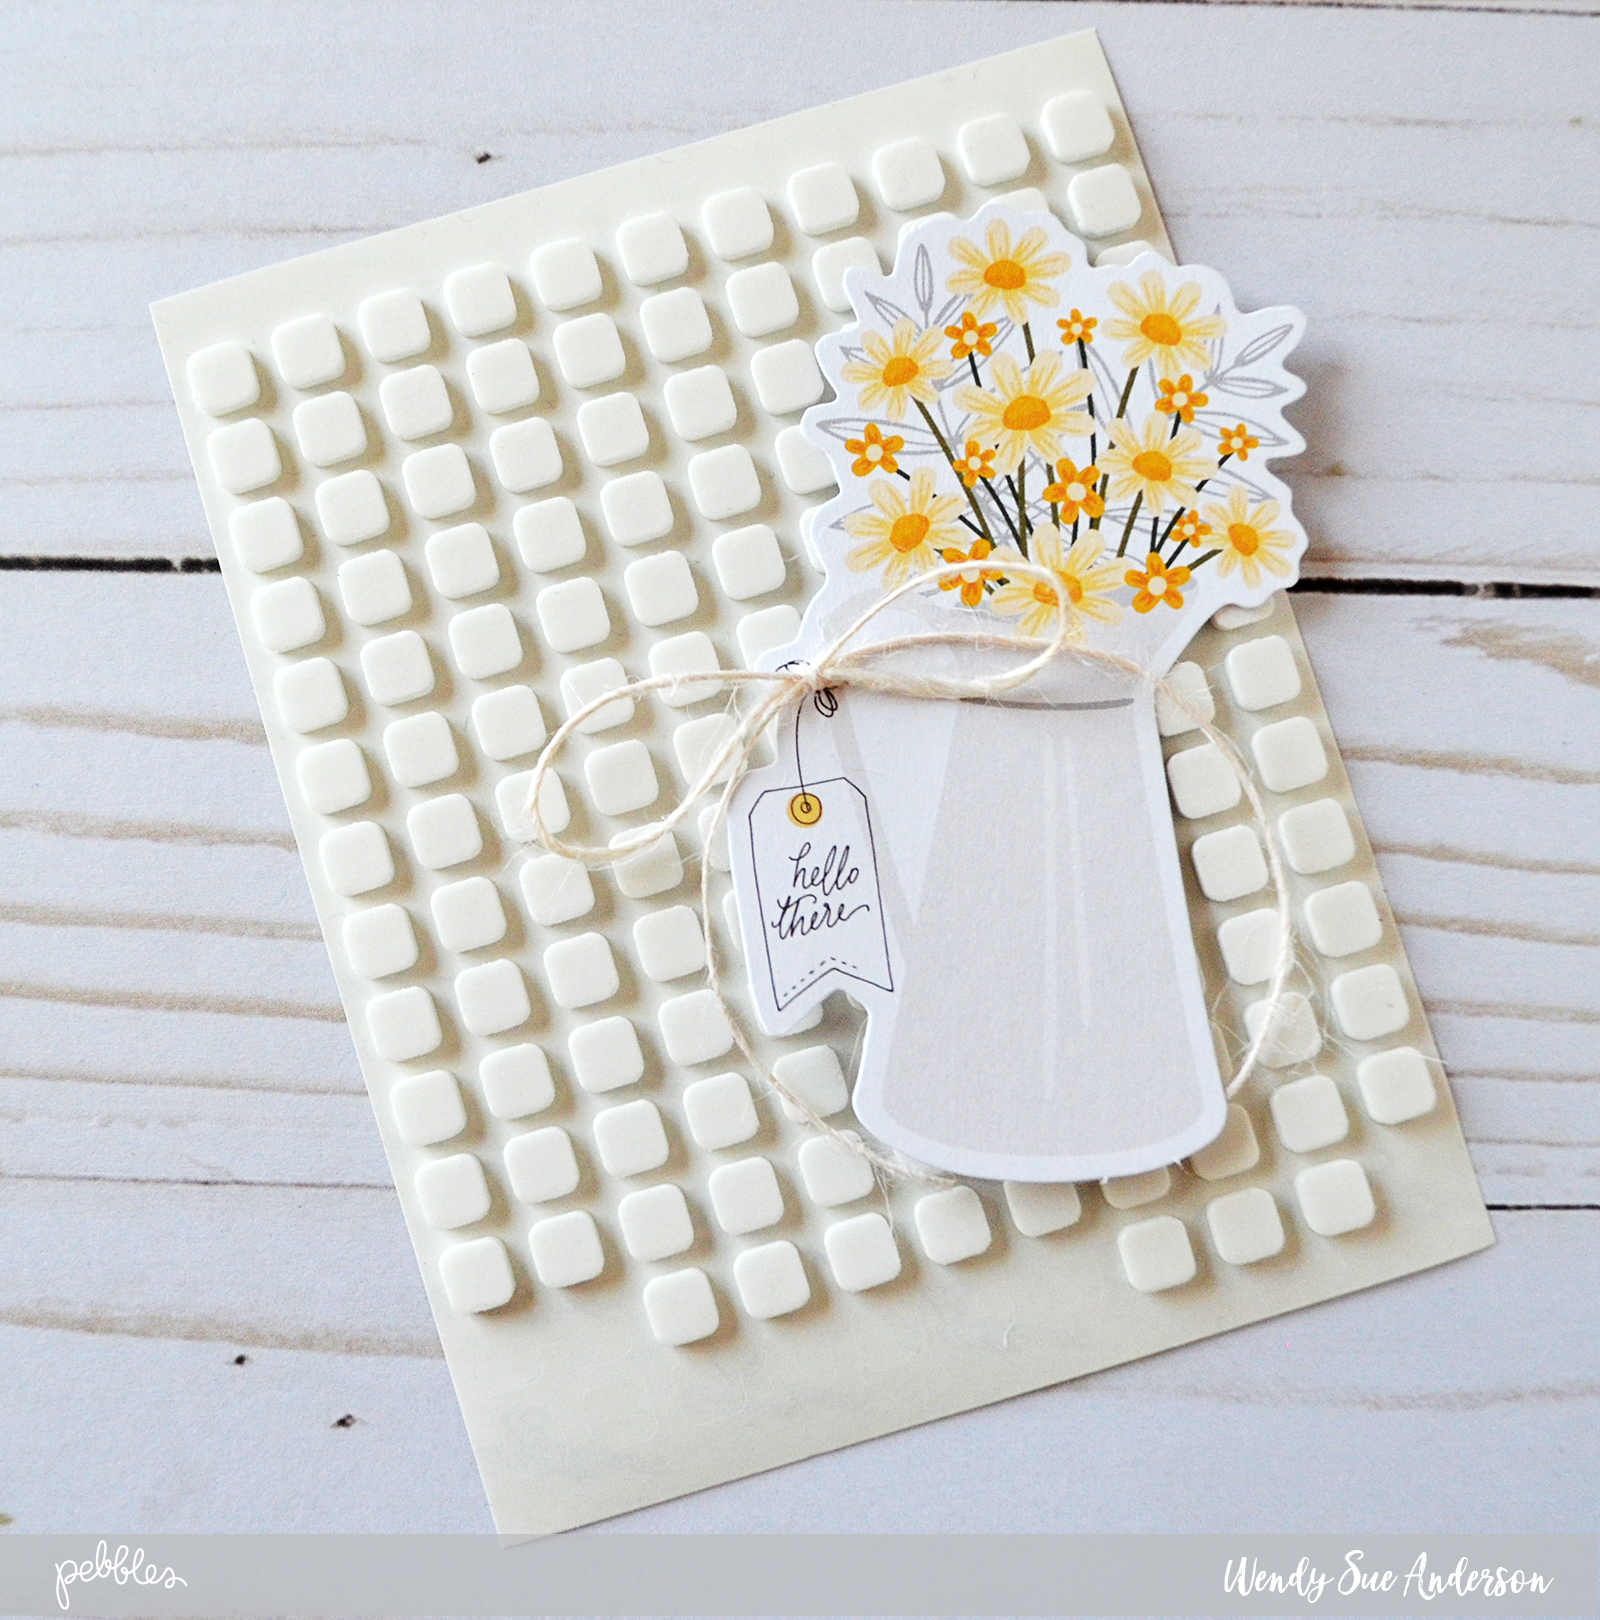 """step-by-step instructions by @wendysue for creating a pretty layered card with the """"Simple Life"""" collection by @PebblesInc."""